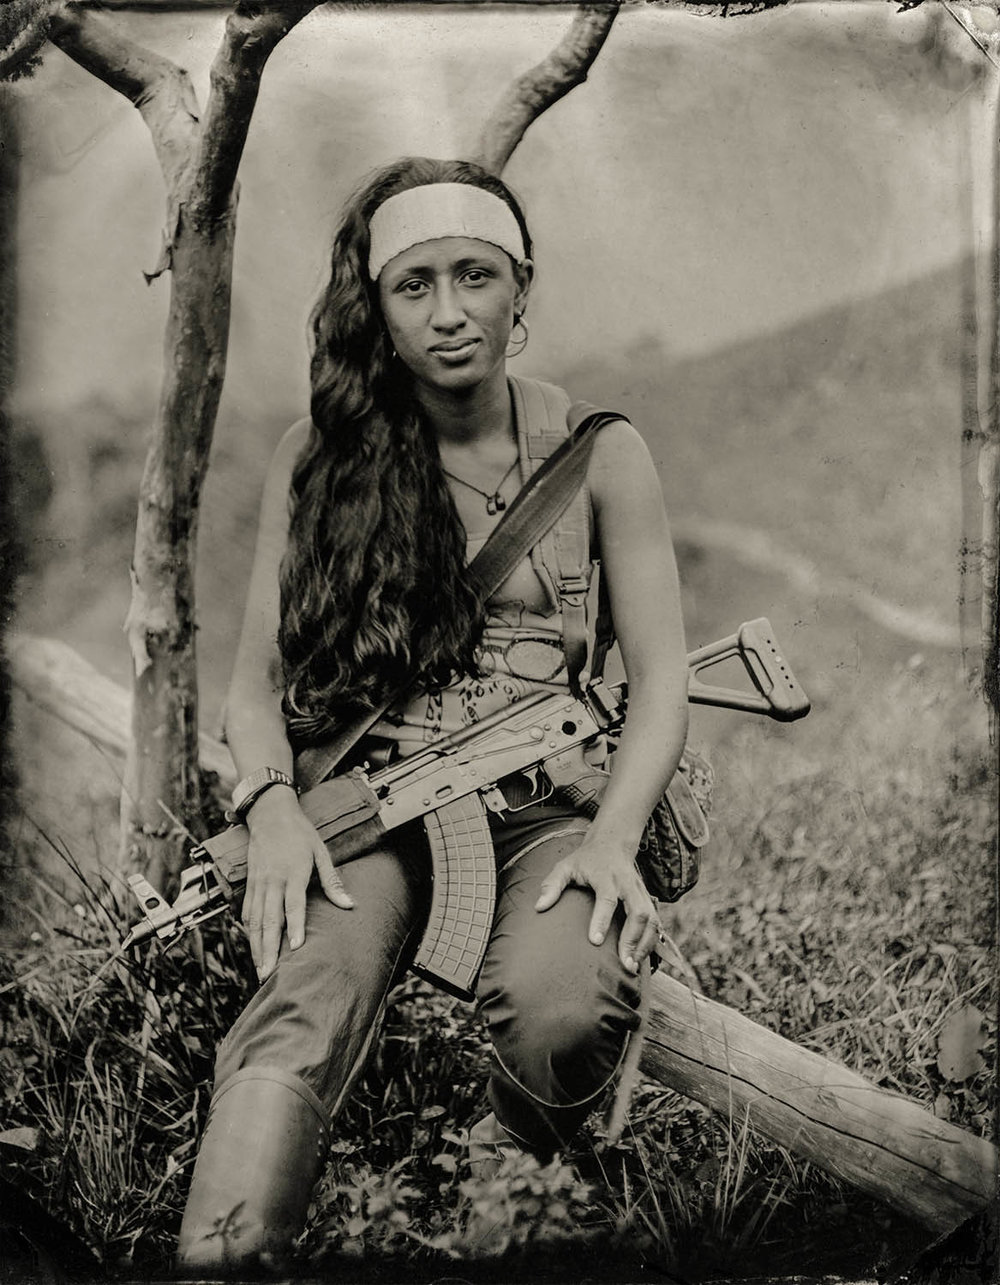 Maritza - By: Zach Krahmer  www.zachkrahmer.com   I made my first plates in mid-2016 during a one day workshop with Portland based photographer Ray Bidegain  The image of Maritza comes from, and represents a larger series of 80 plates of the 53-year old Colombian guerrilla army, FARC, in the early weeks of 2017 before they formally demobilized. The plates were made within various camps in remote areas of the mountainous Andean jungle, that were only accessible by mule.  I chose to make this work because the narrative presented in the news is simple, and I wanted to learn about the complex and dynamic motivations of individuals on this side in the Colombian Civil War. I chose to work with collodion because the process engages the sitter with the photographer, and requires collaboration.  Whether securing access, acquiring chemistry in a remote area, or innovating ultra mobile set ups, the series took international coordination between many groups of people in order to happen. Be sure to check out Vela Colectivo, who secured access, and Camilo Sabogal who assisted with acquiring chemicals in Colombia.